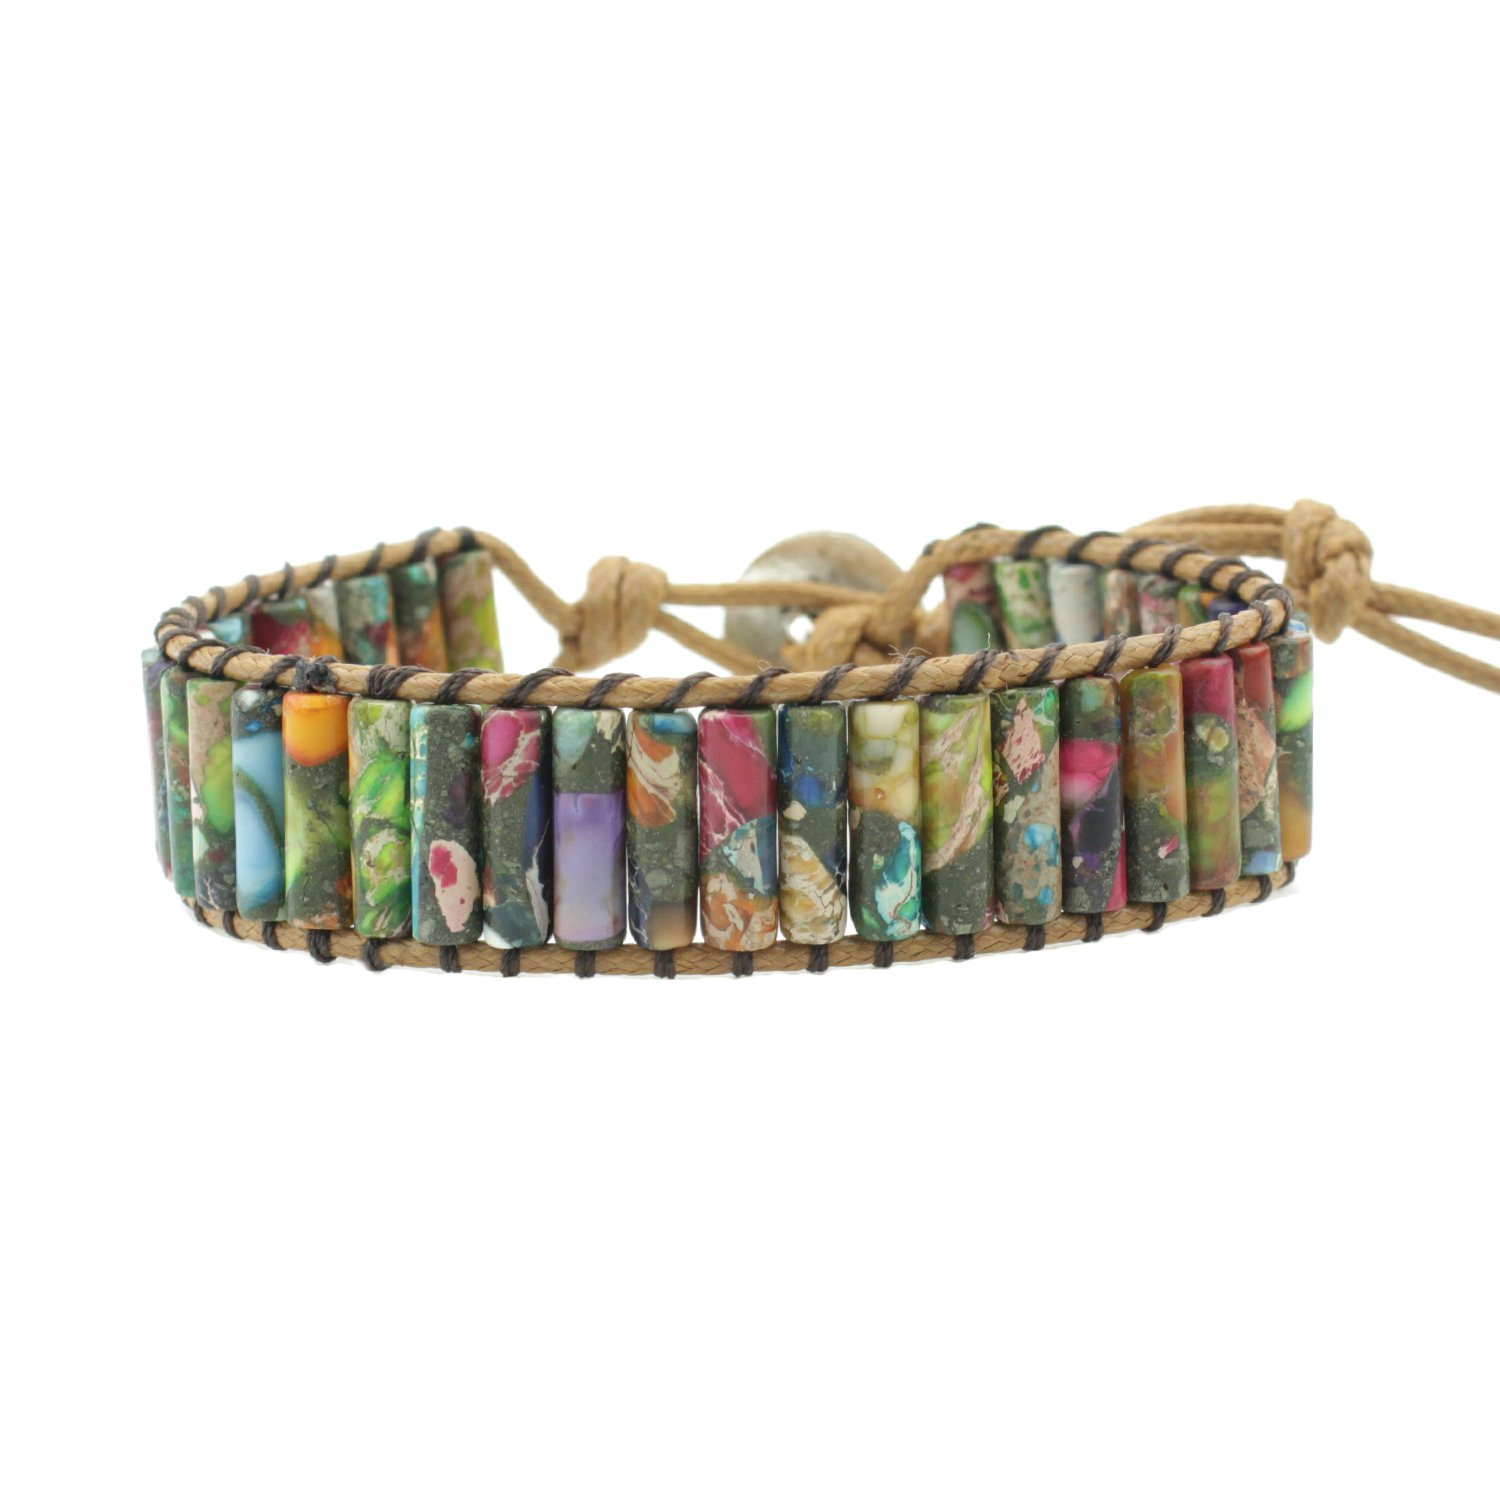 IUNIQUEEN Rainbow Natural Stone Beads Friendship Statement Wrap Imperial Jasper Bracelets Collection for Women (tube beads style)